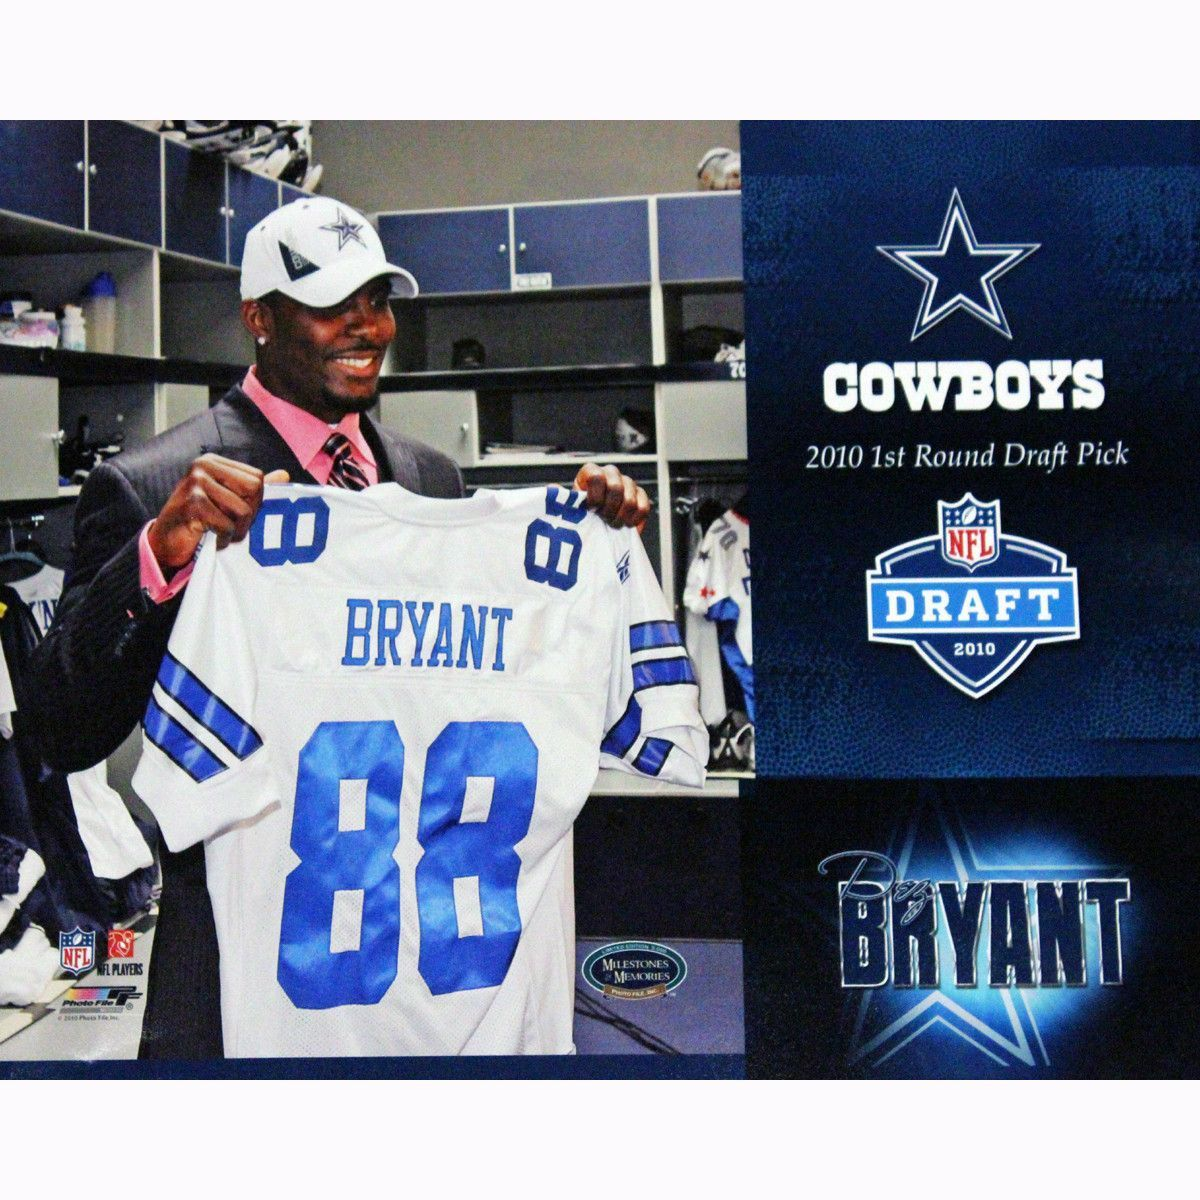 Dez Bryant 2010 1st Round Draft Pick 11x14 Collage Photo unsi